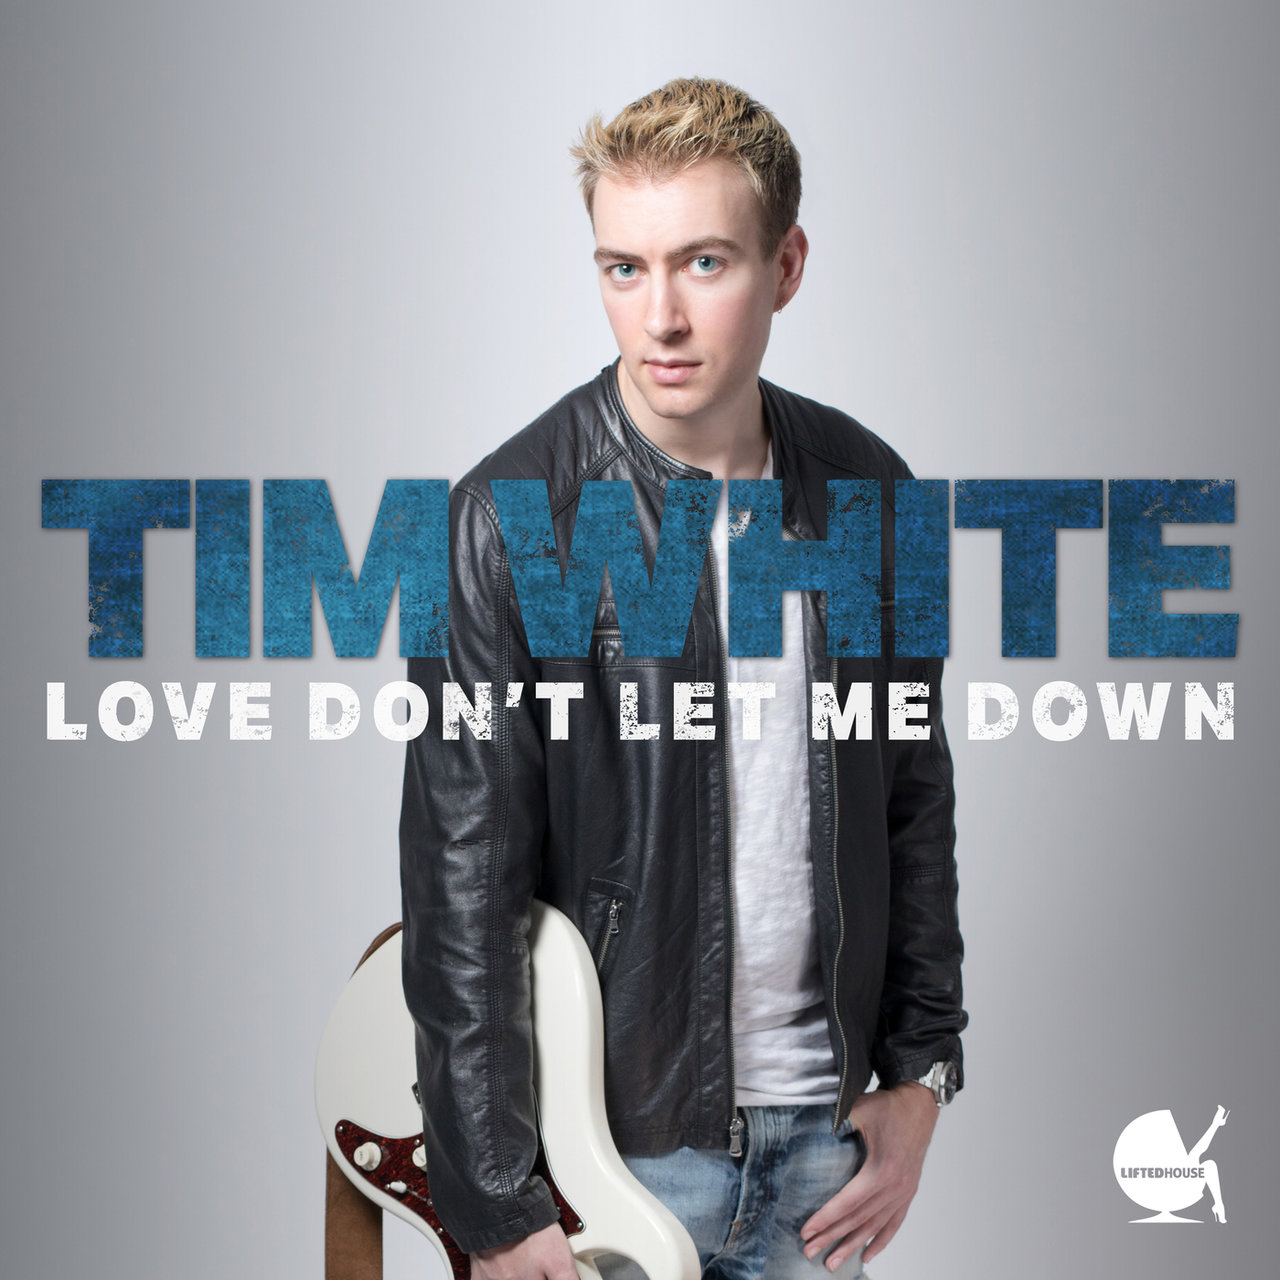 Love Don't Let Me Down